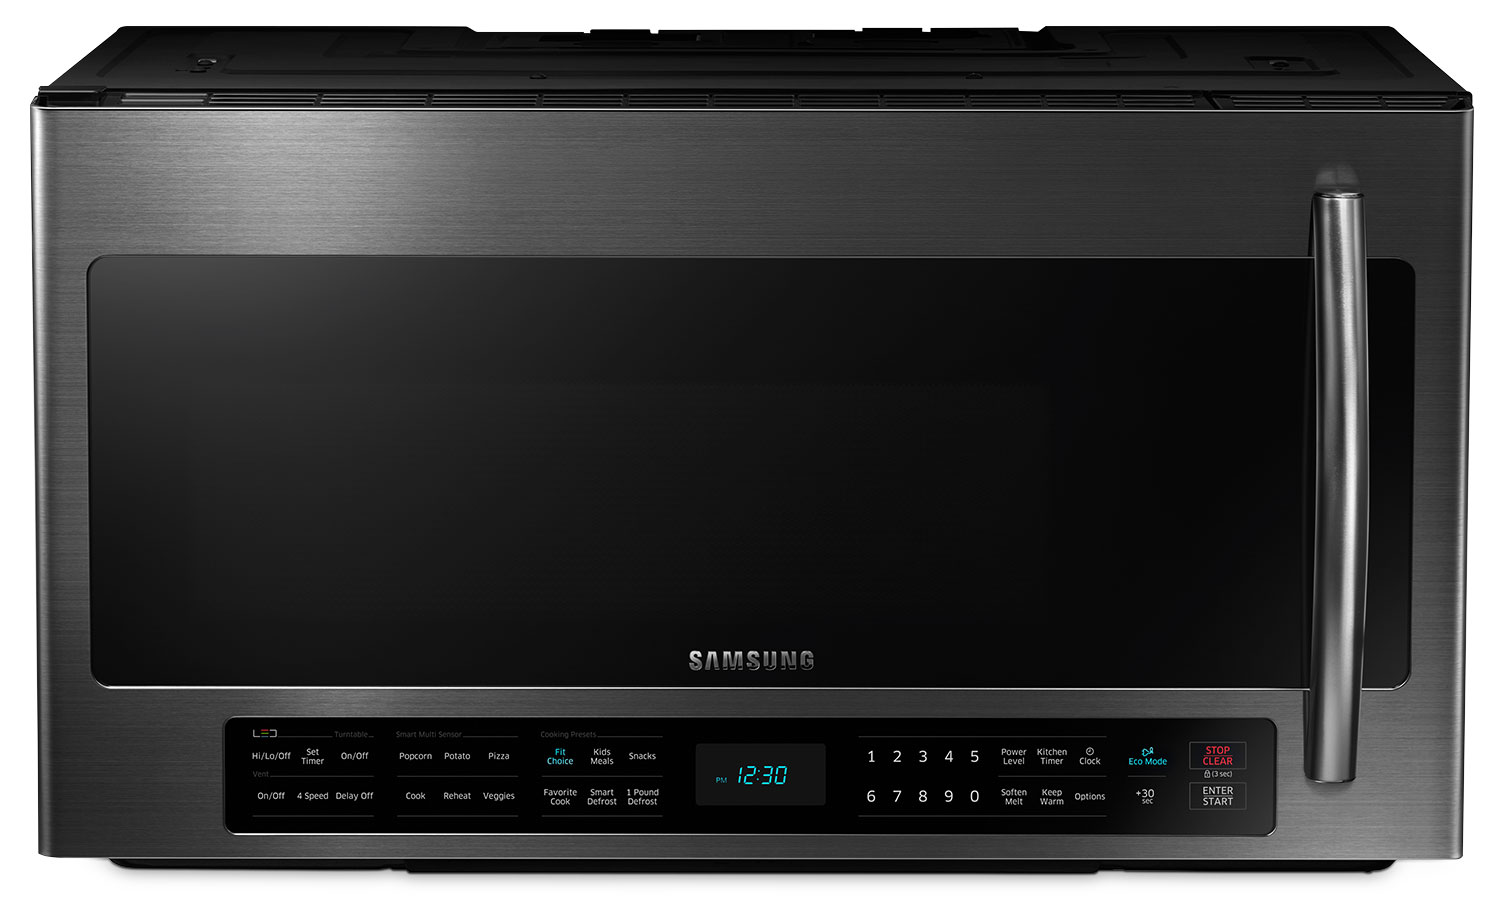 Cooking Products - Samsung Black Stainless Steel Over-the-Range Microwave (2.1 Cu. Ft.) - ME21H706MQG/AC